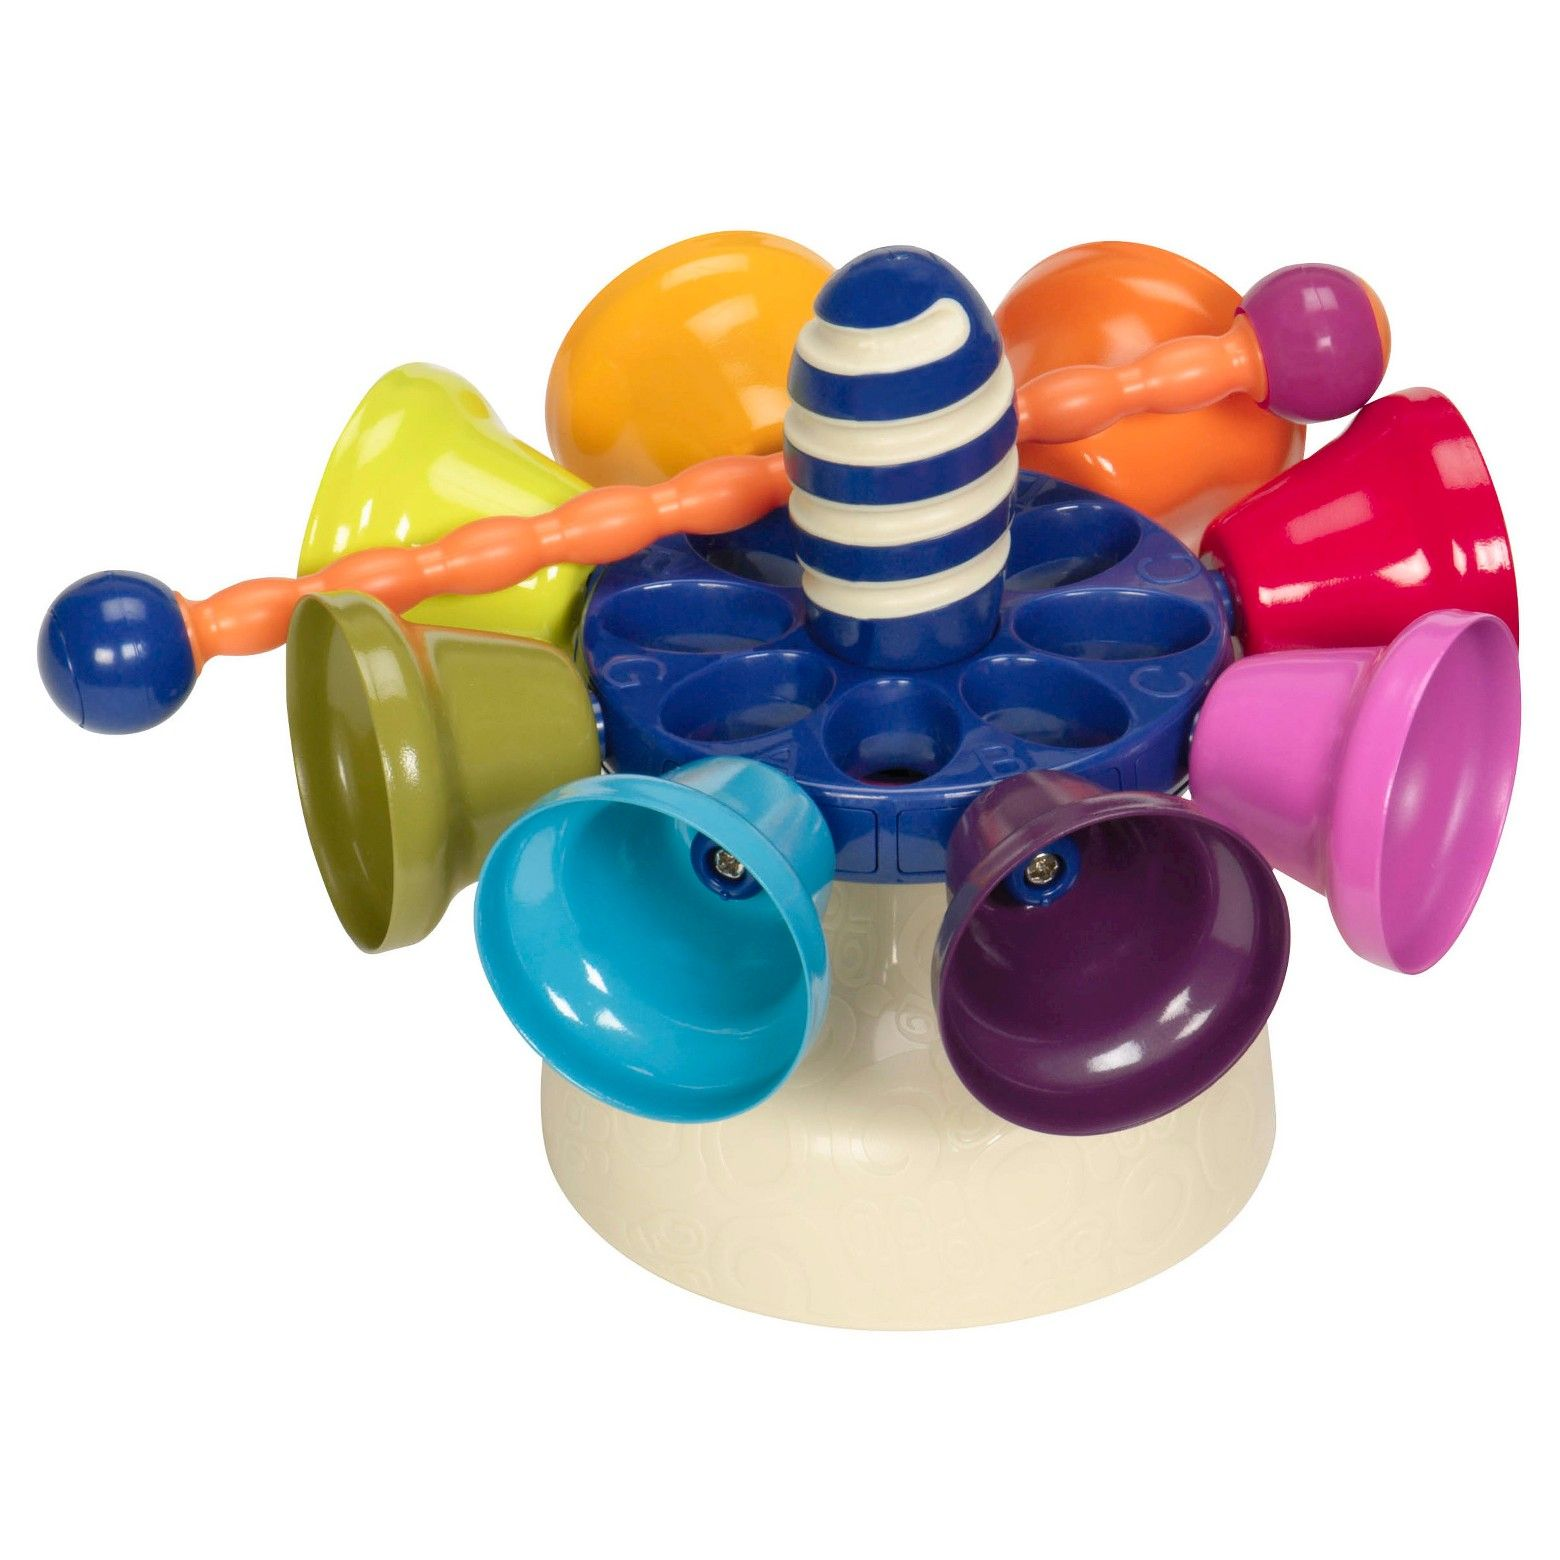 B toys carousel bells  B toys Carousel Bells Toy Drums and Percussion  Owenus Wish List